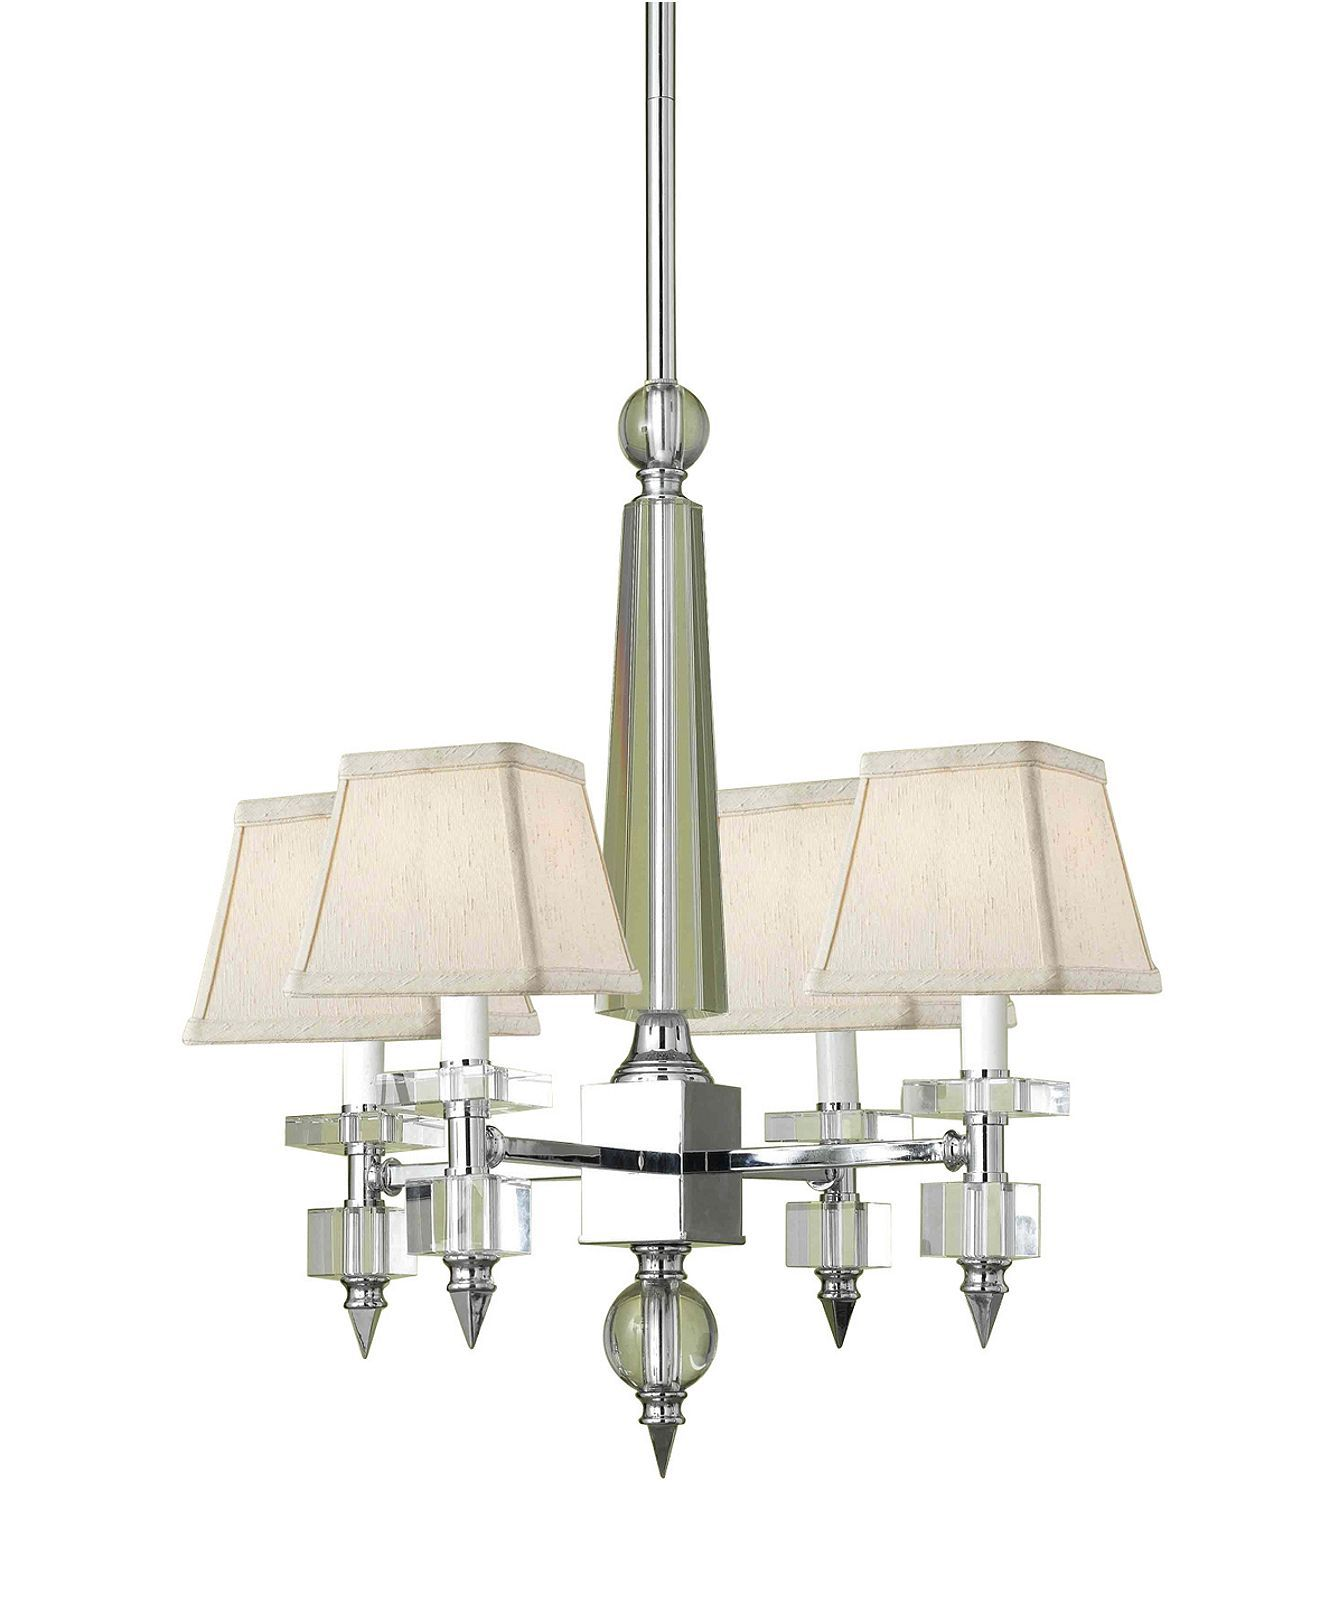 Candice Olson Lighting Cluny Chrome Chandeliers Chandelier